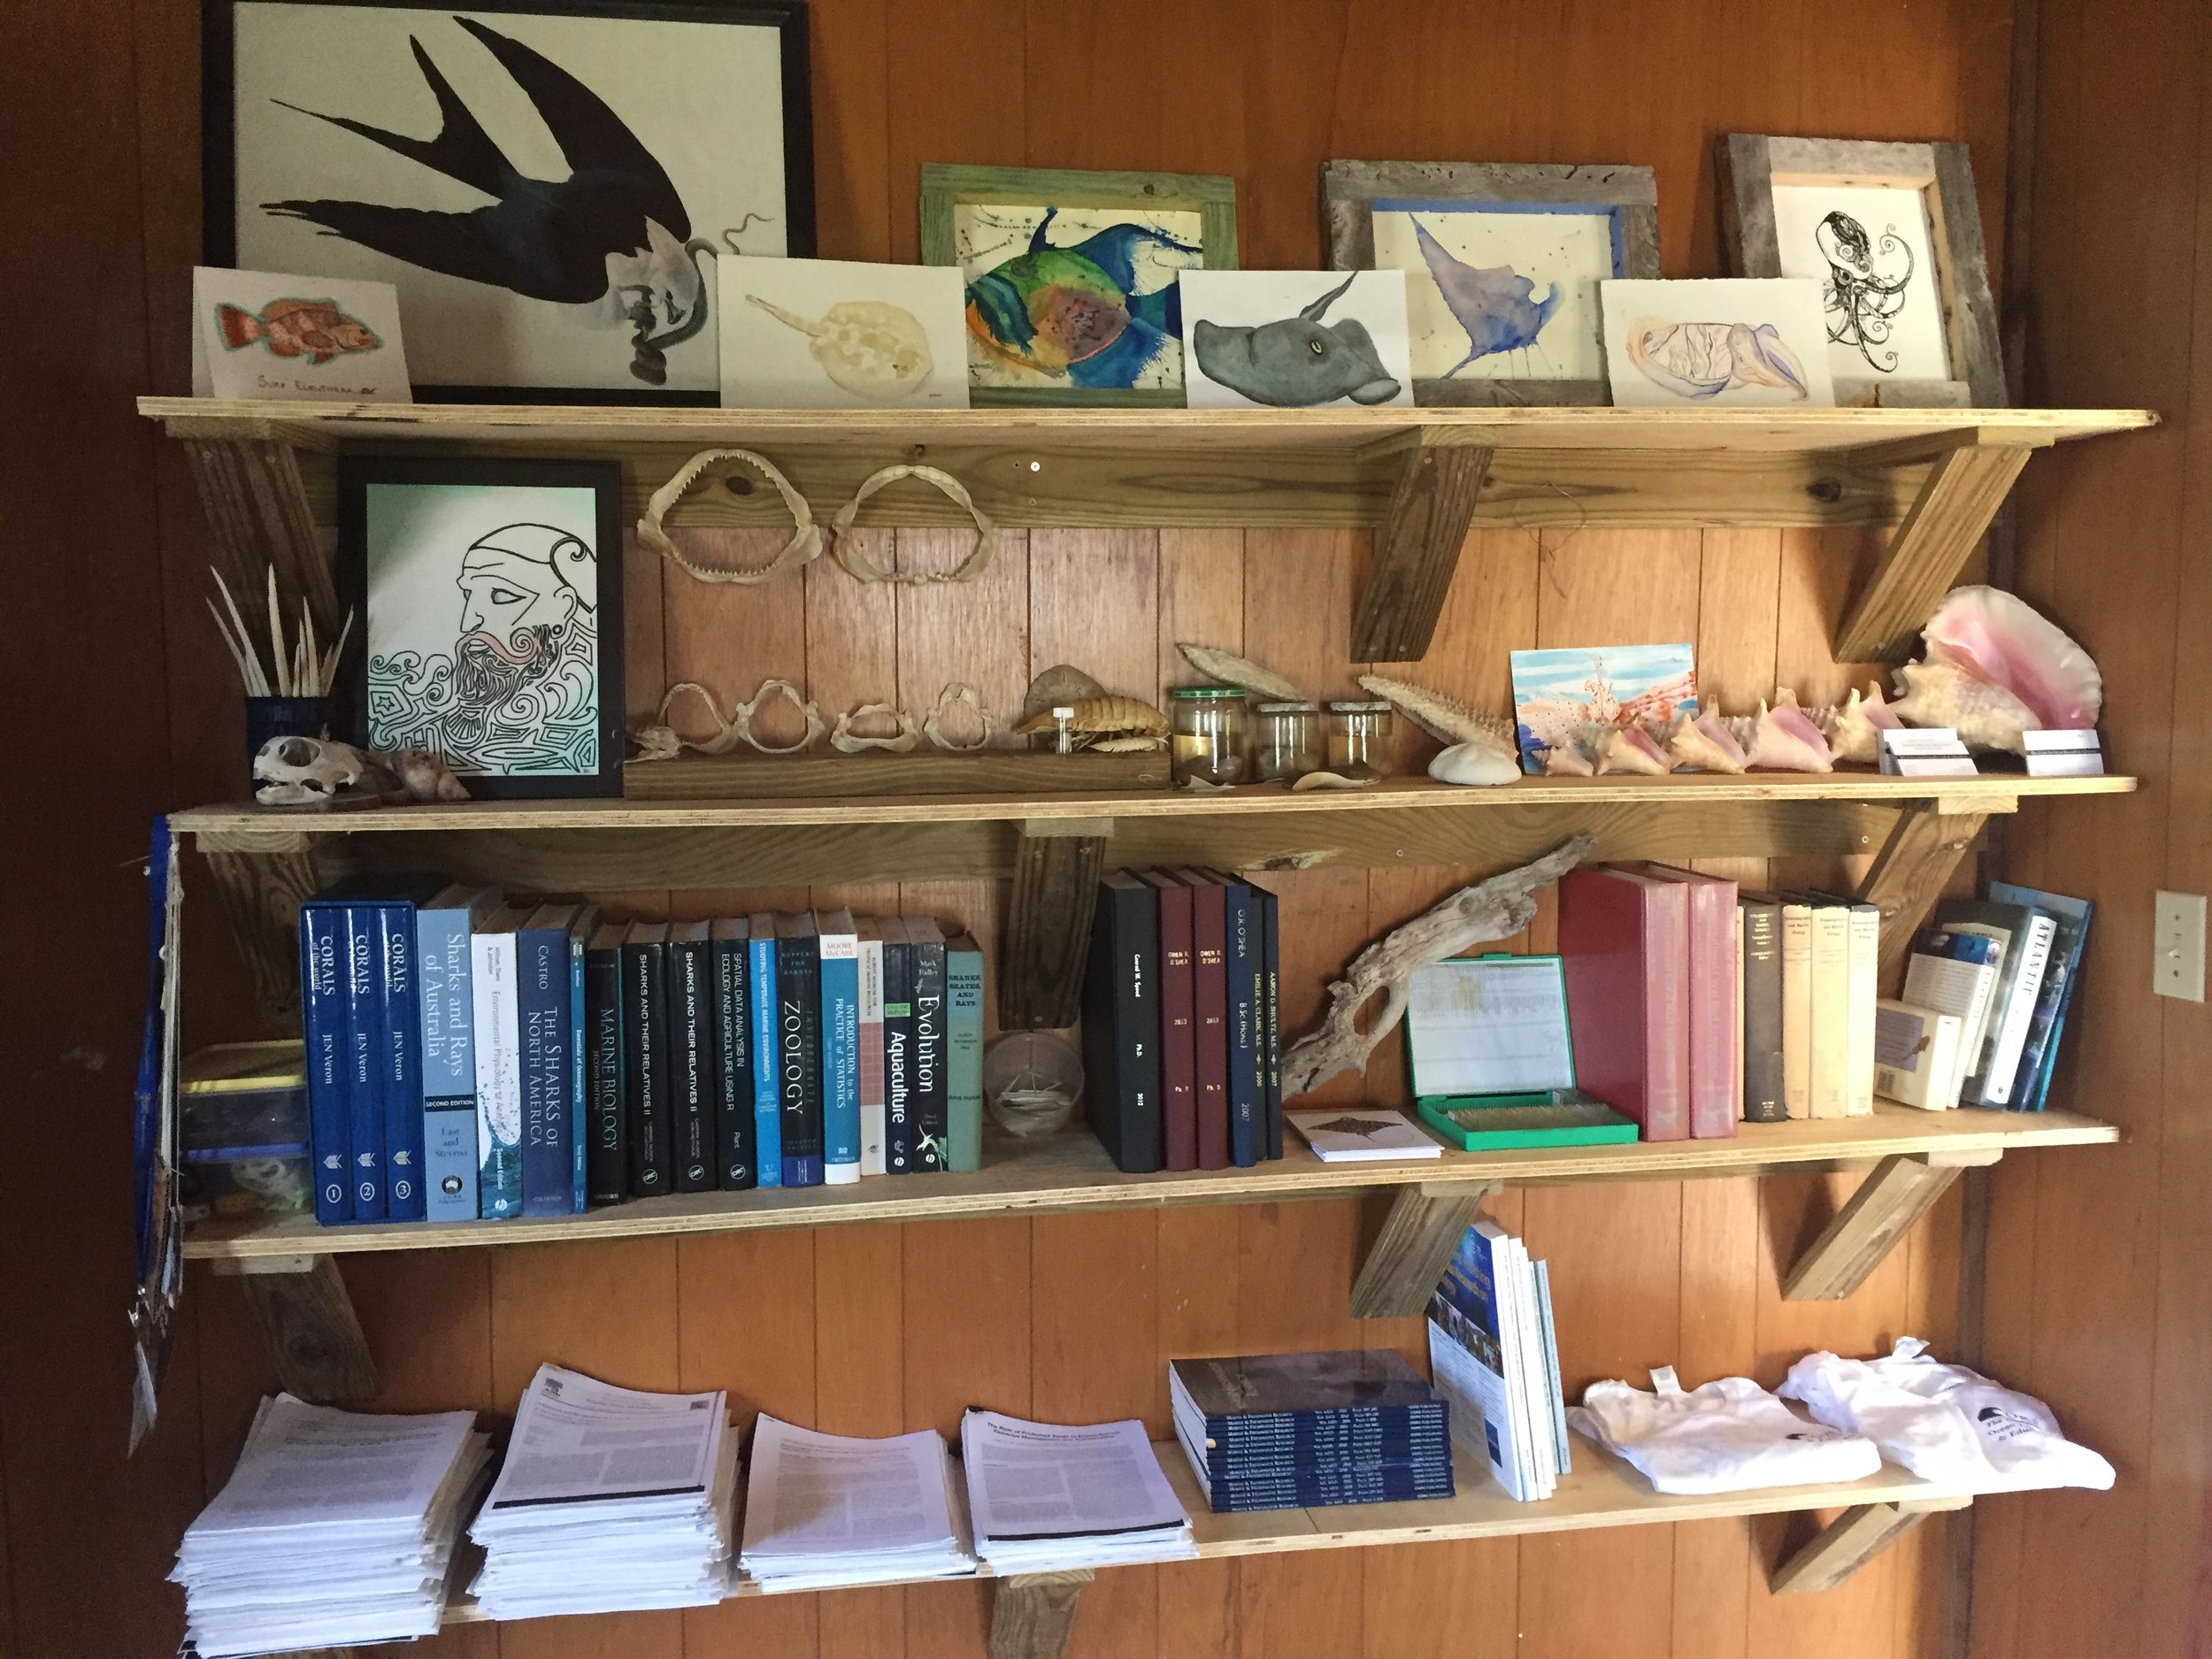 CORE's small, yet informative science library